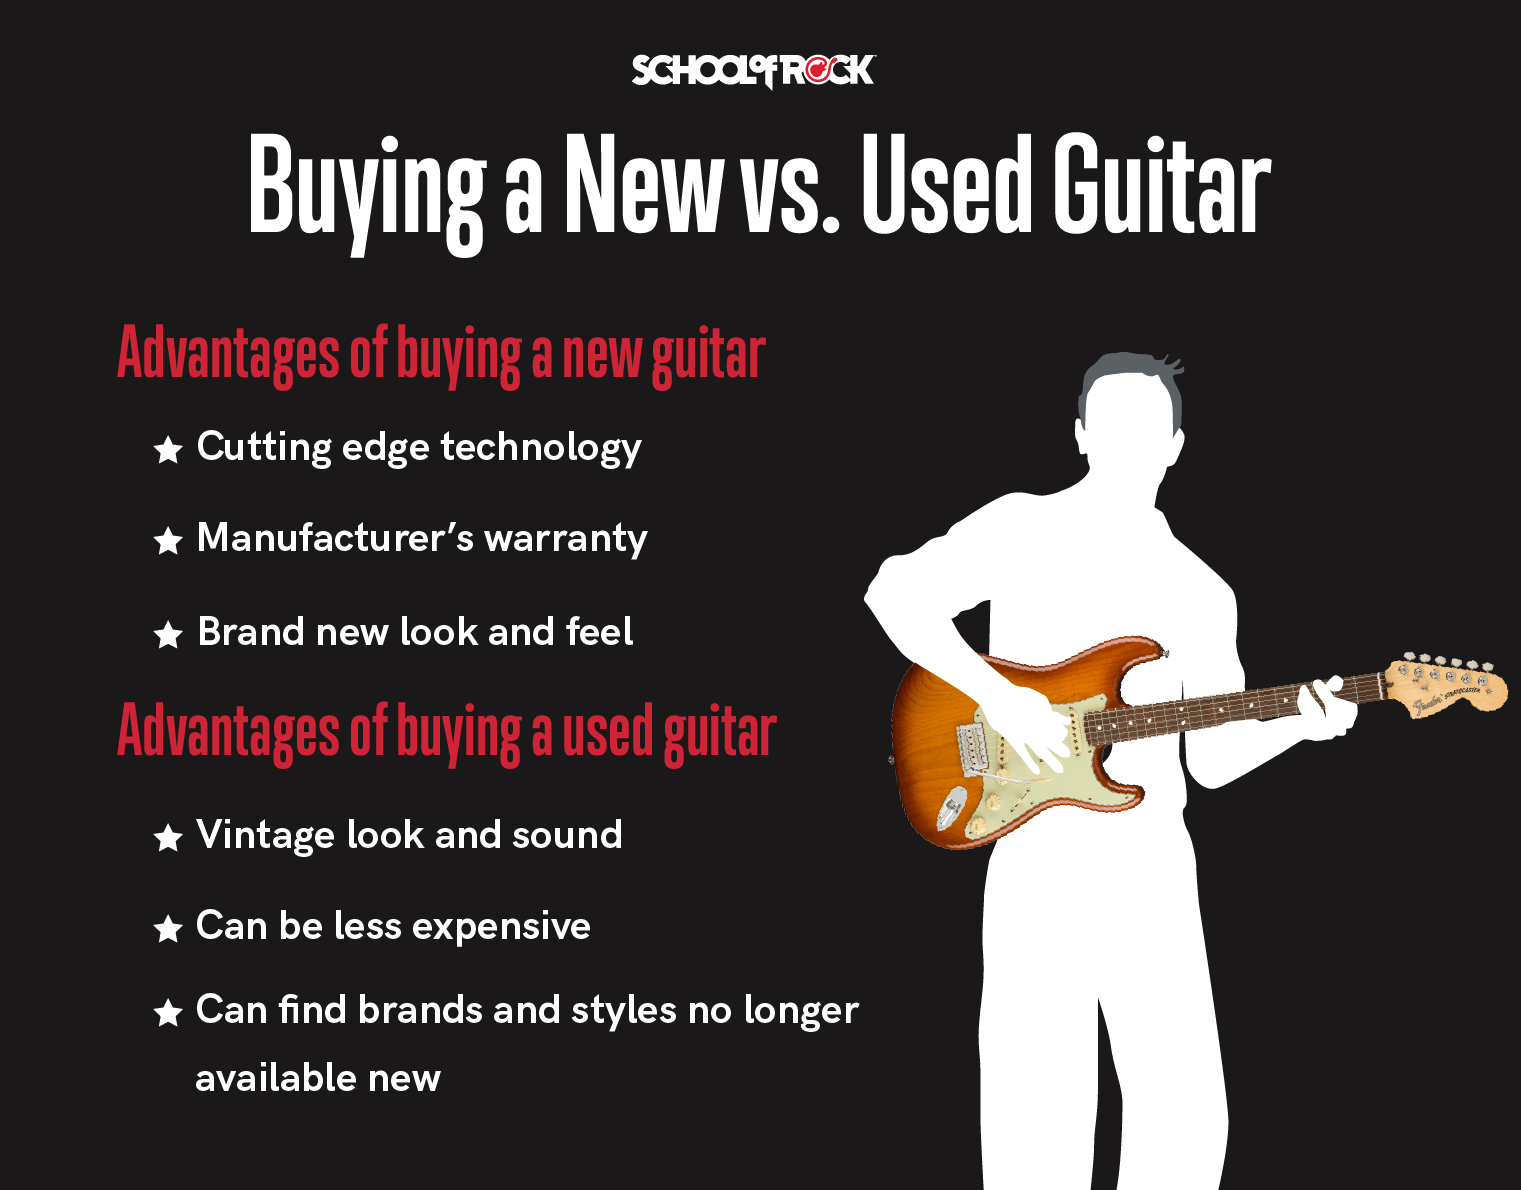 Buying a new vs. a used guitar